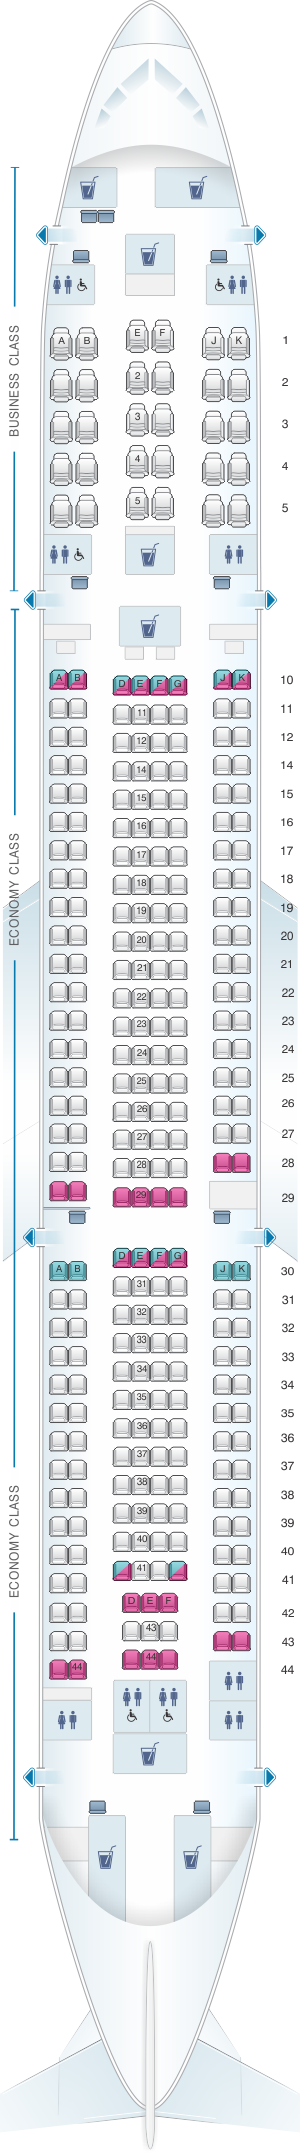 Seat map for Qatar Airways Airbus A330 300 395pax